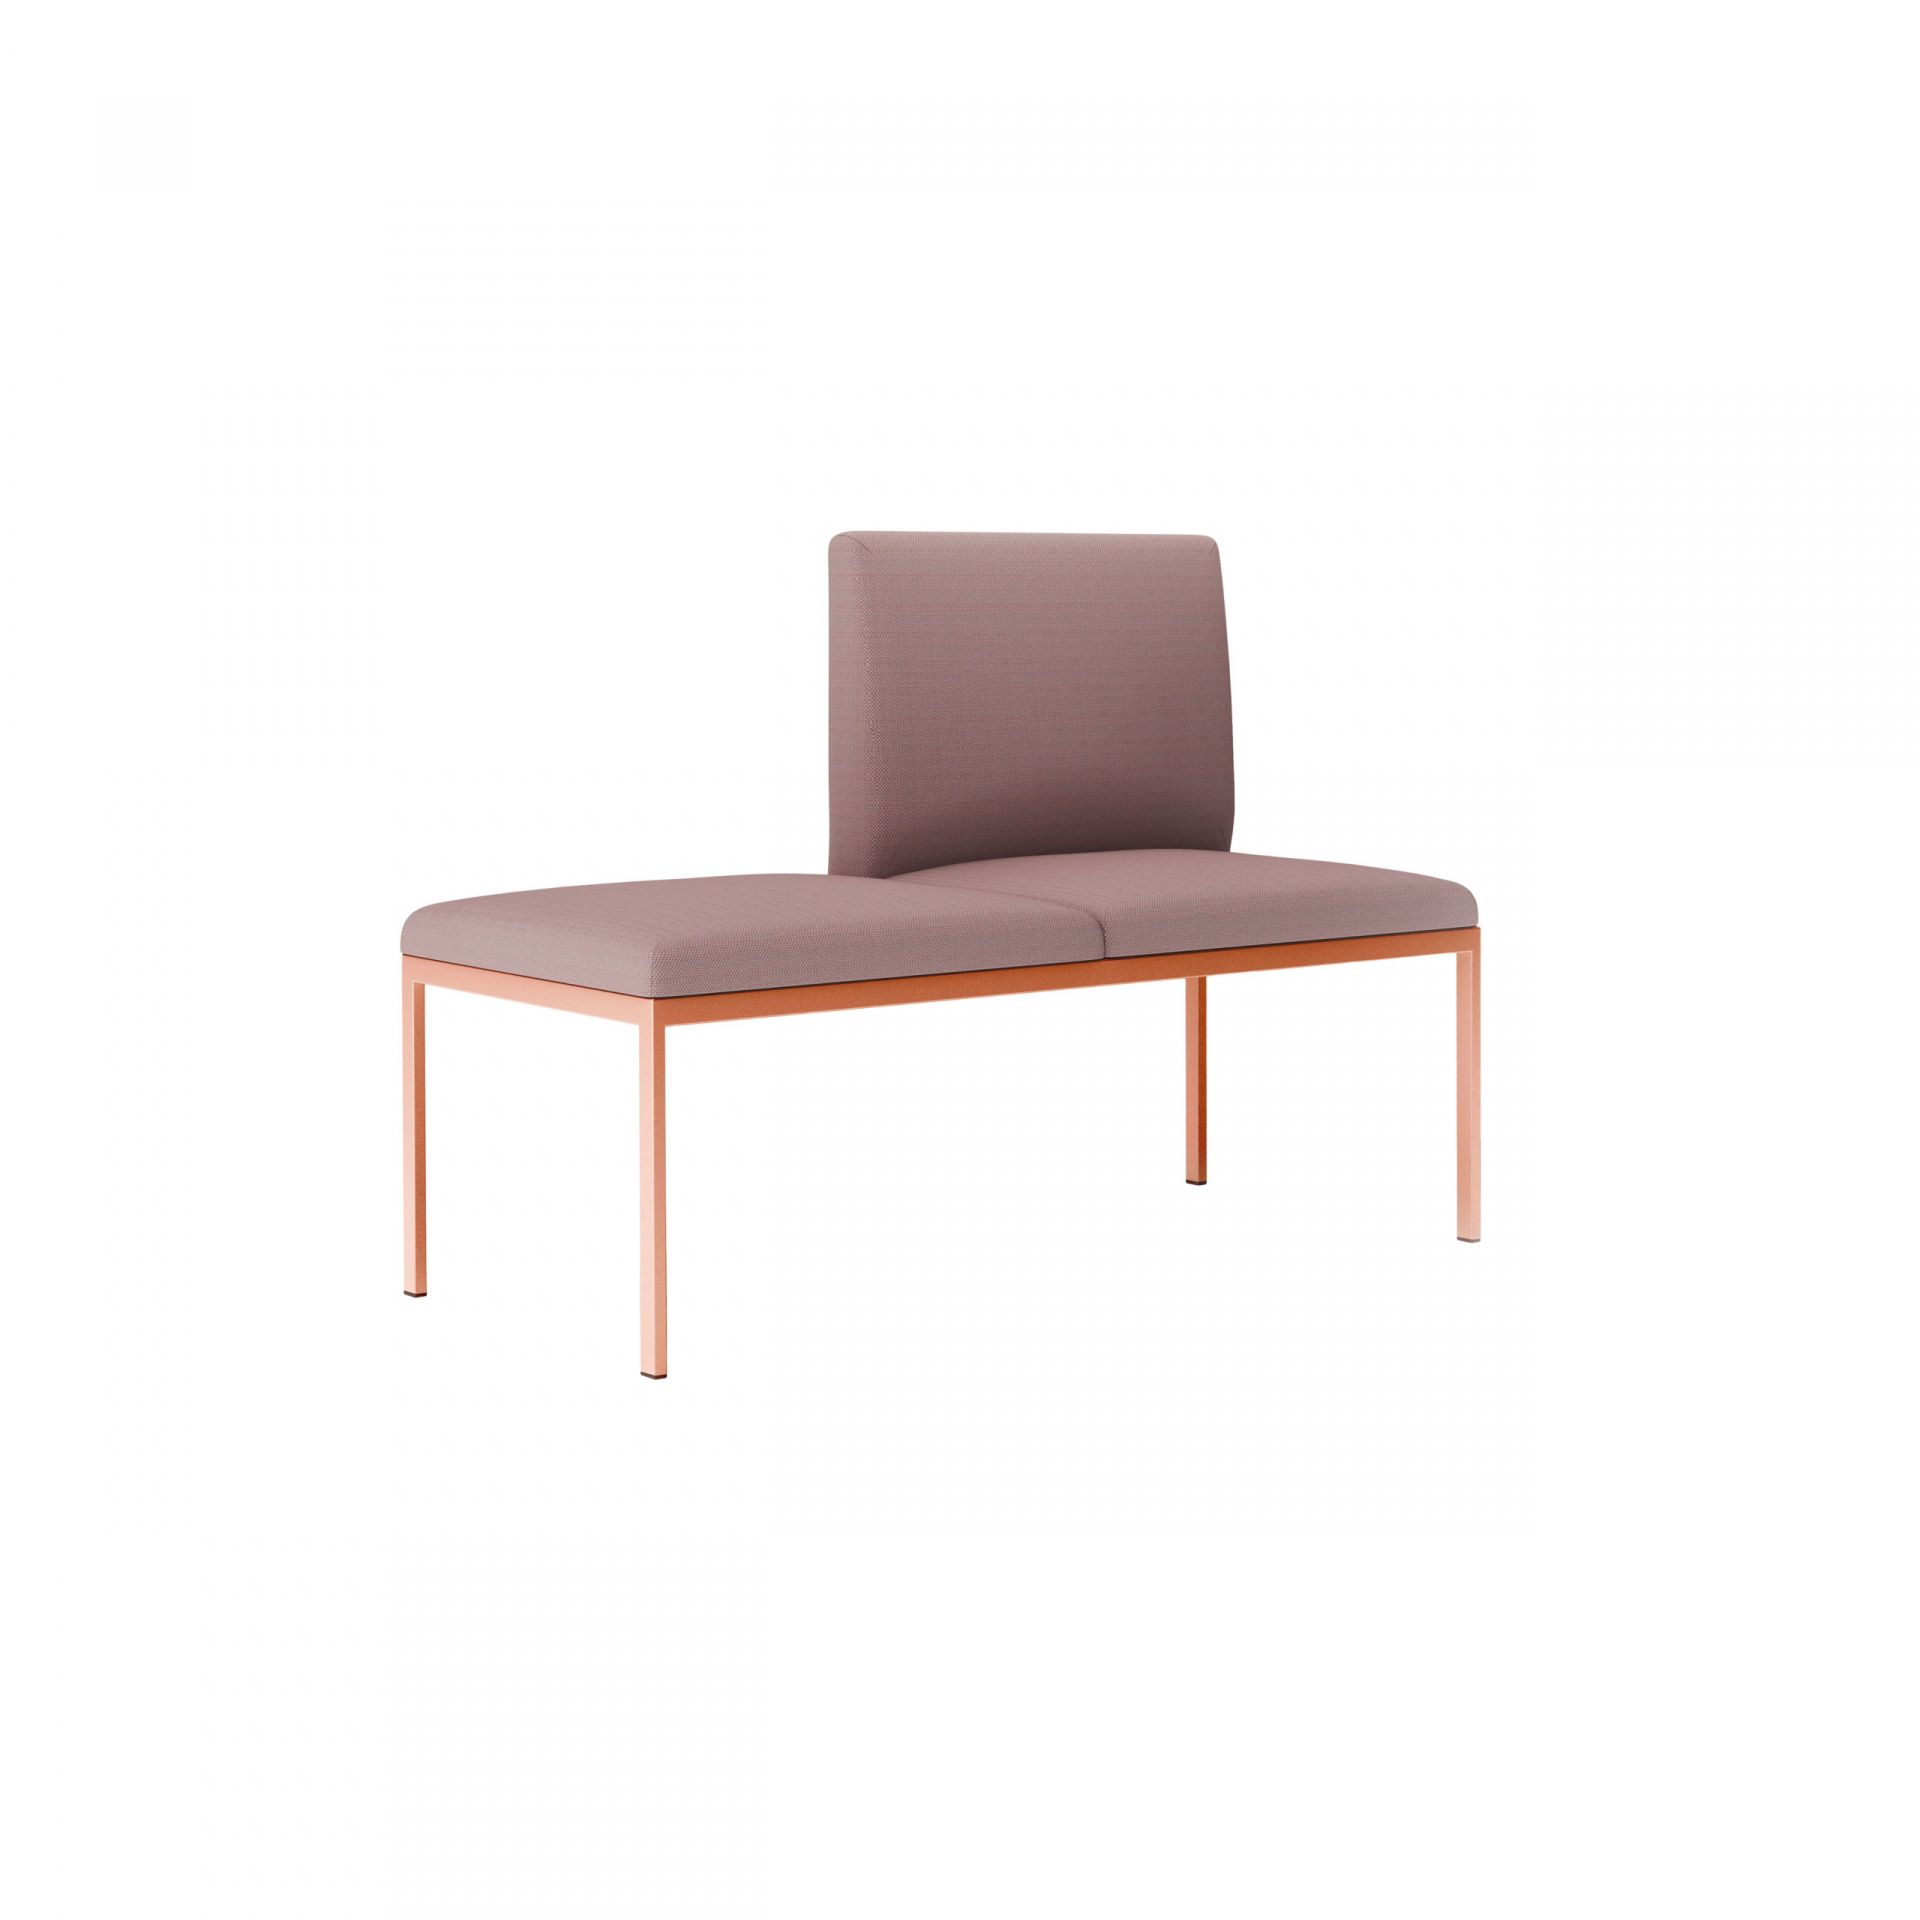 Create Seating Bench product image 2